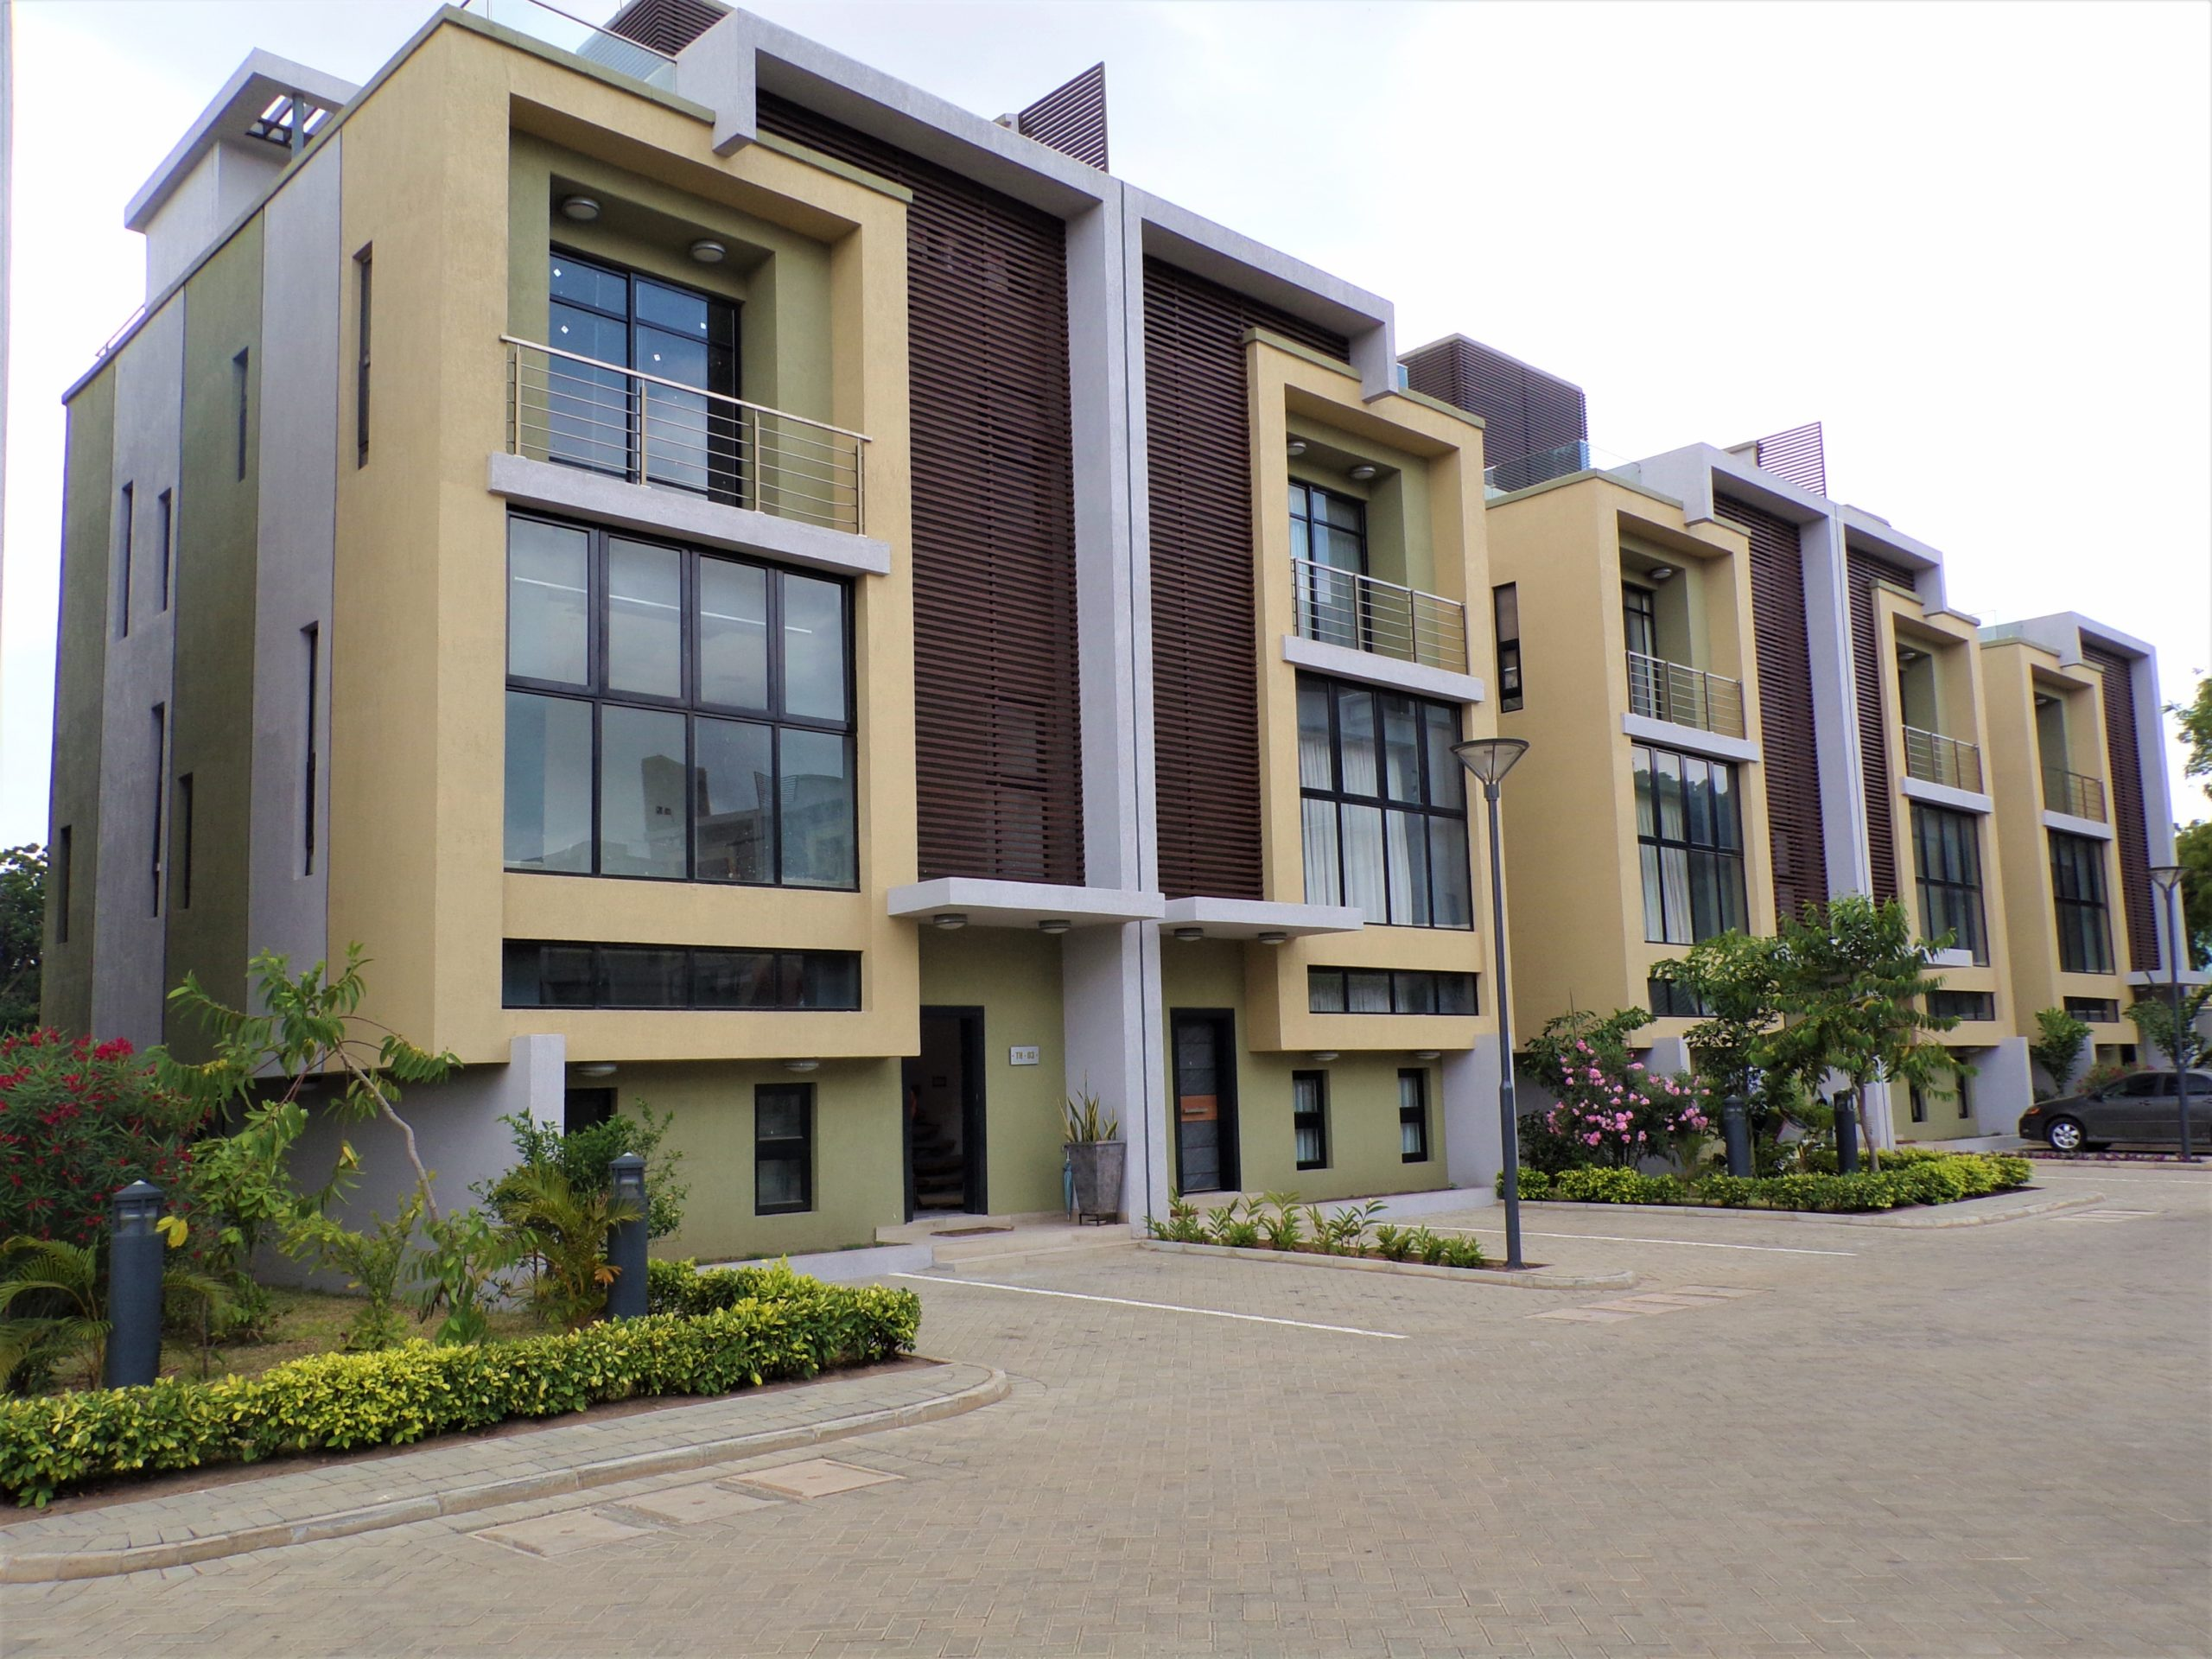 4 bedroom furnished townhouse for rent in Cantonments.